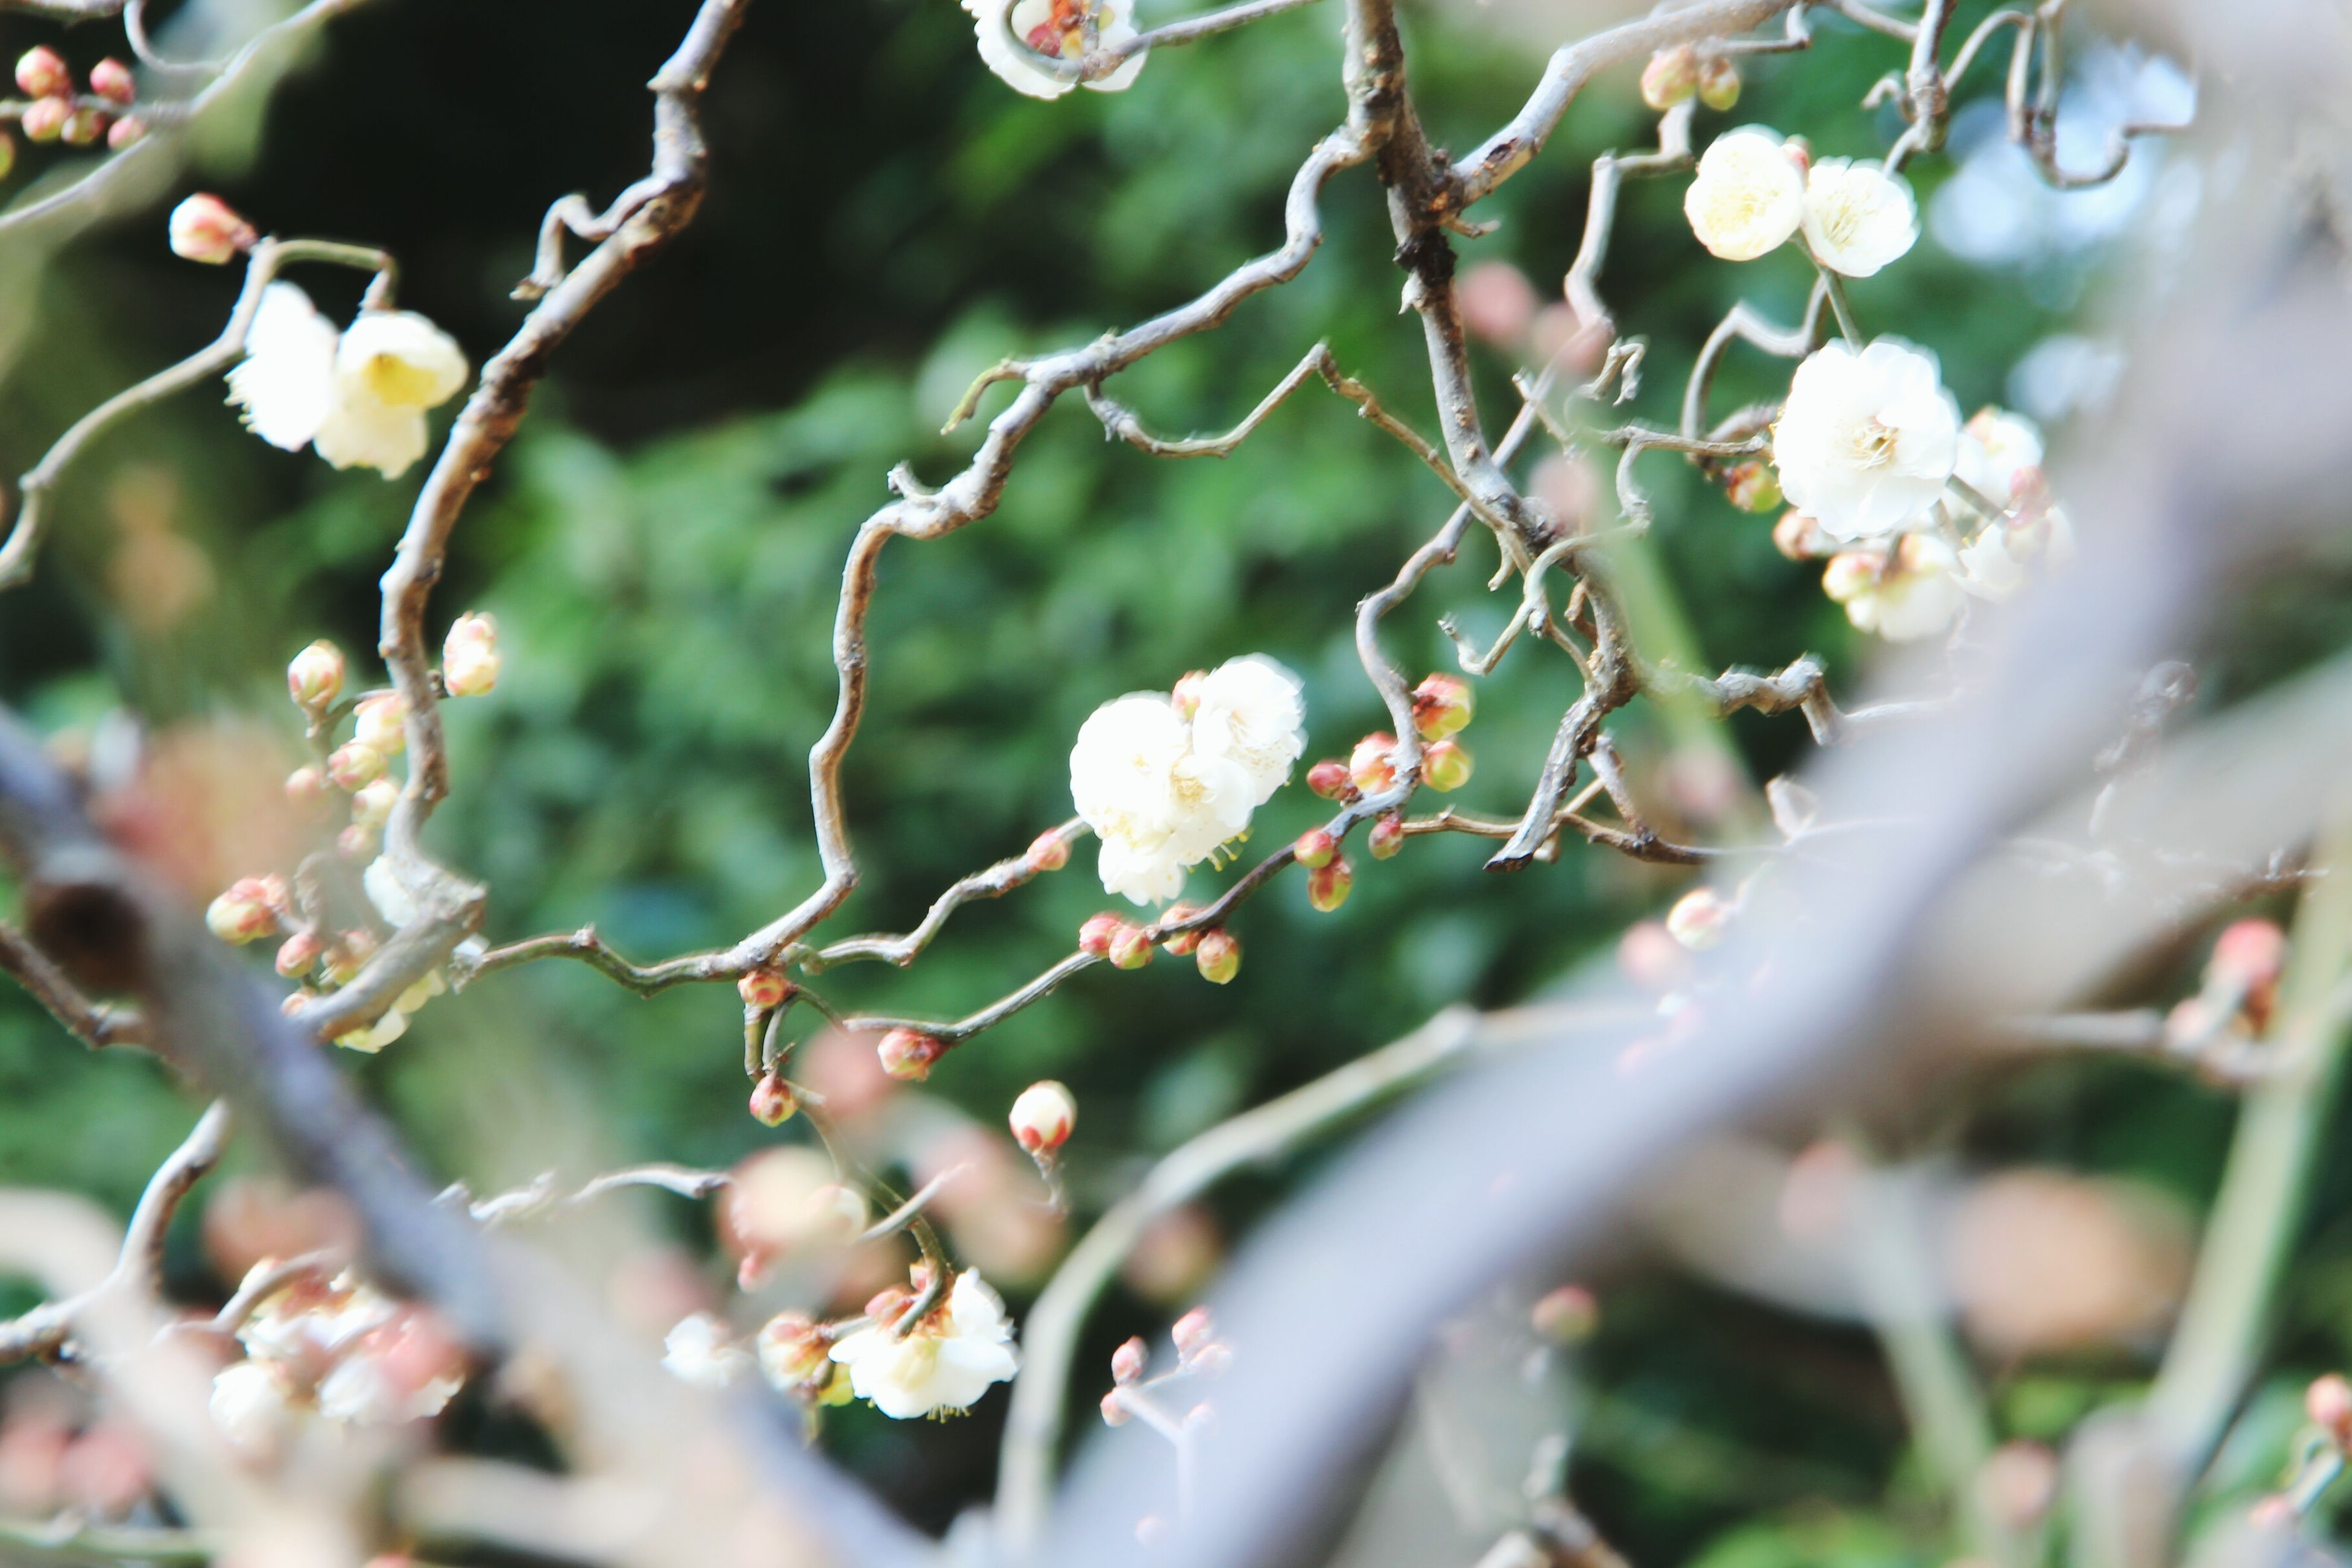 flower, growth, freshness, fragility, beauty in nature, focus on foreground, close-up, white color, nature, petal, plant, selective focus, blooming, flower head, blossom, in bloom, branch, twig, outdoors, day